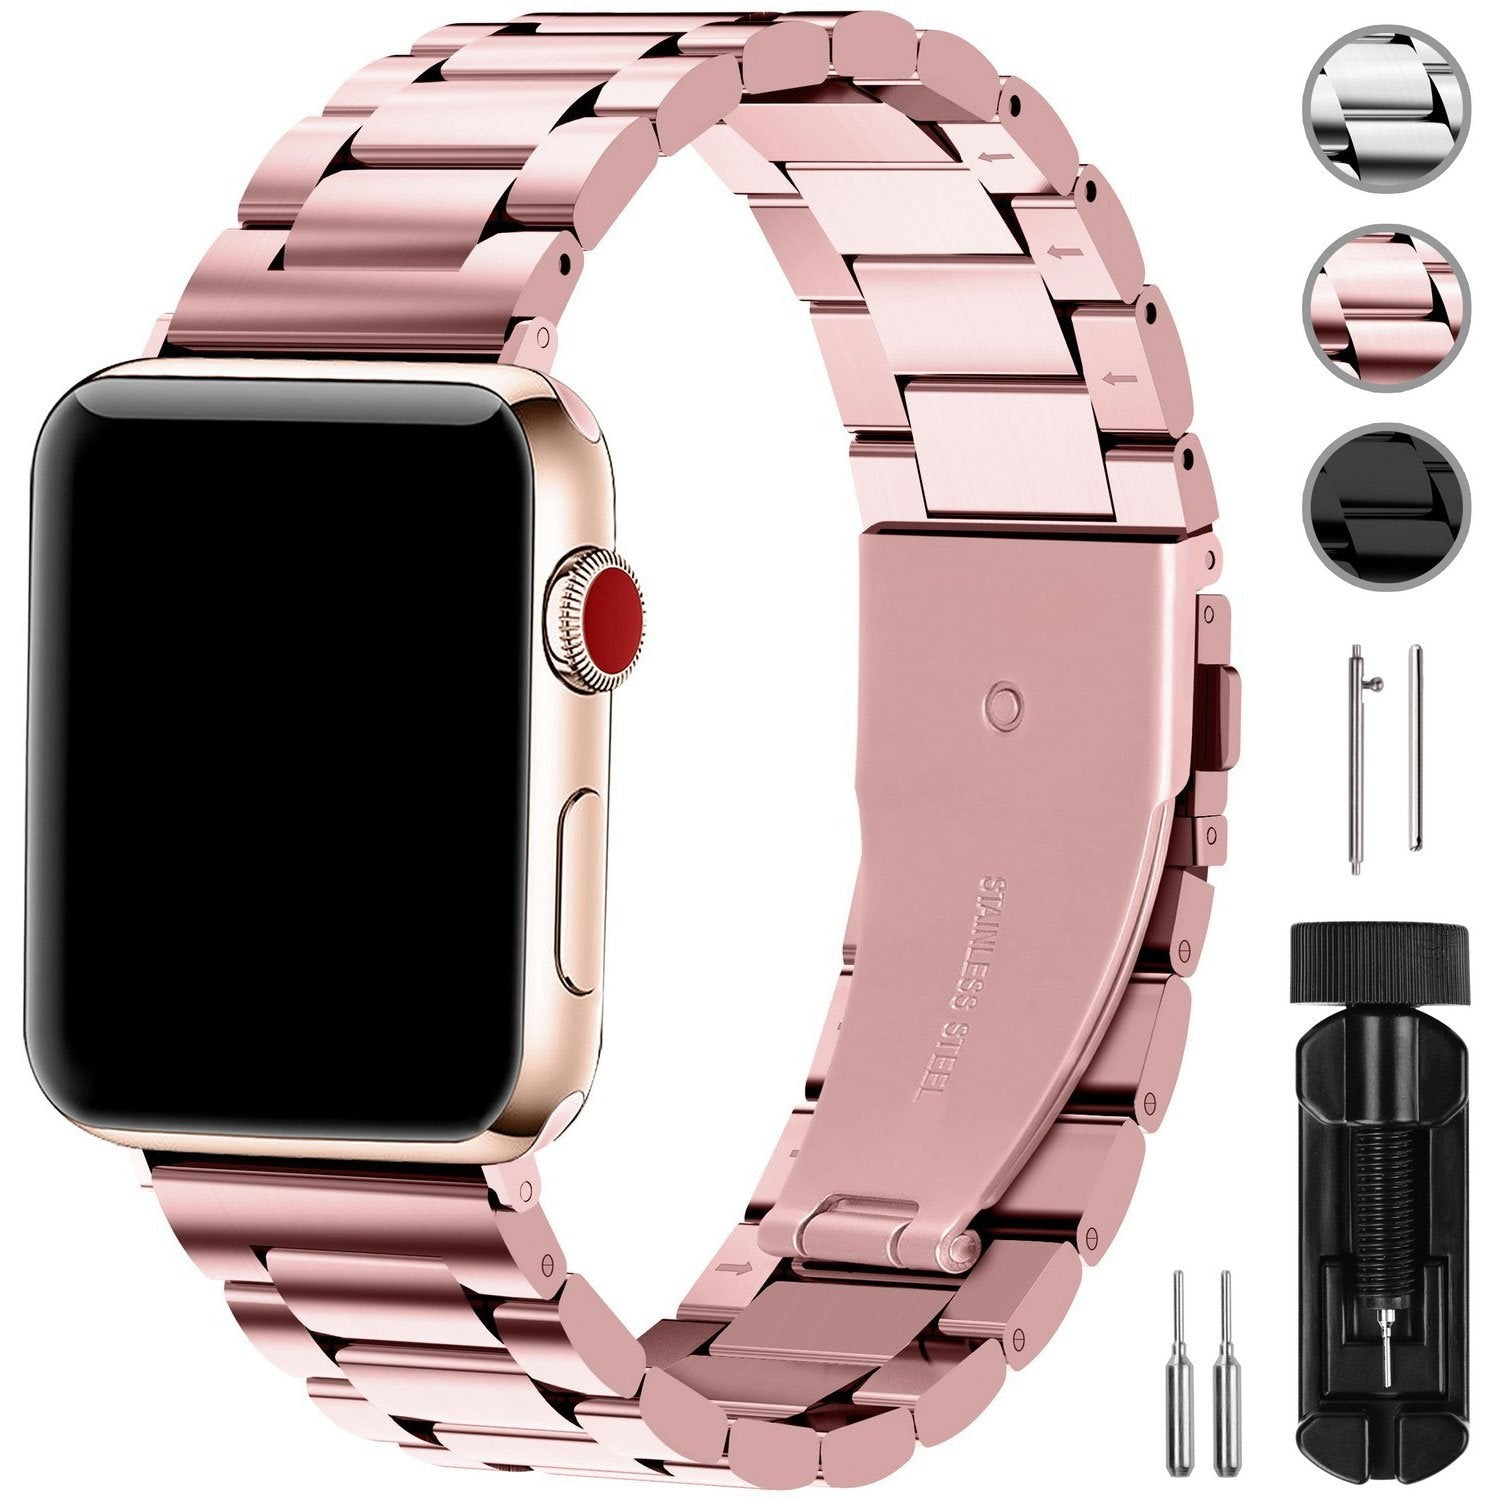 Apple Watch Band Sport Stainless Steel Metal Replacement Strap with Adapter Compatible Apple Watch Series 1 2 3 4